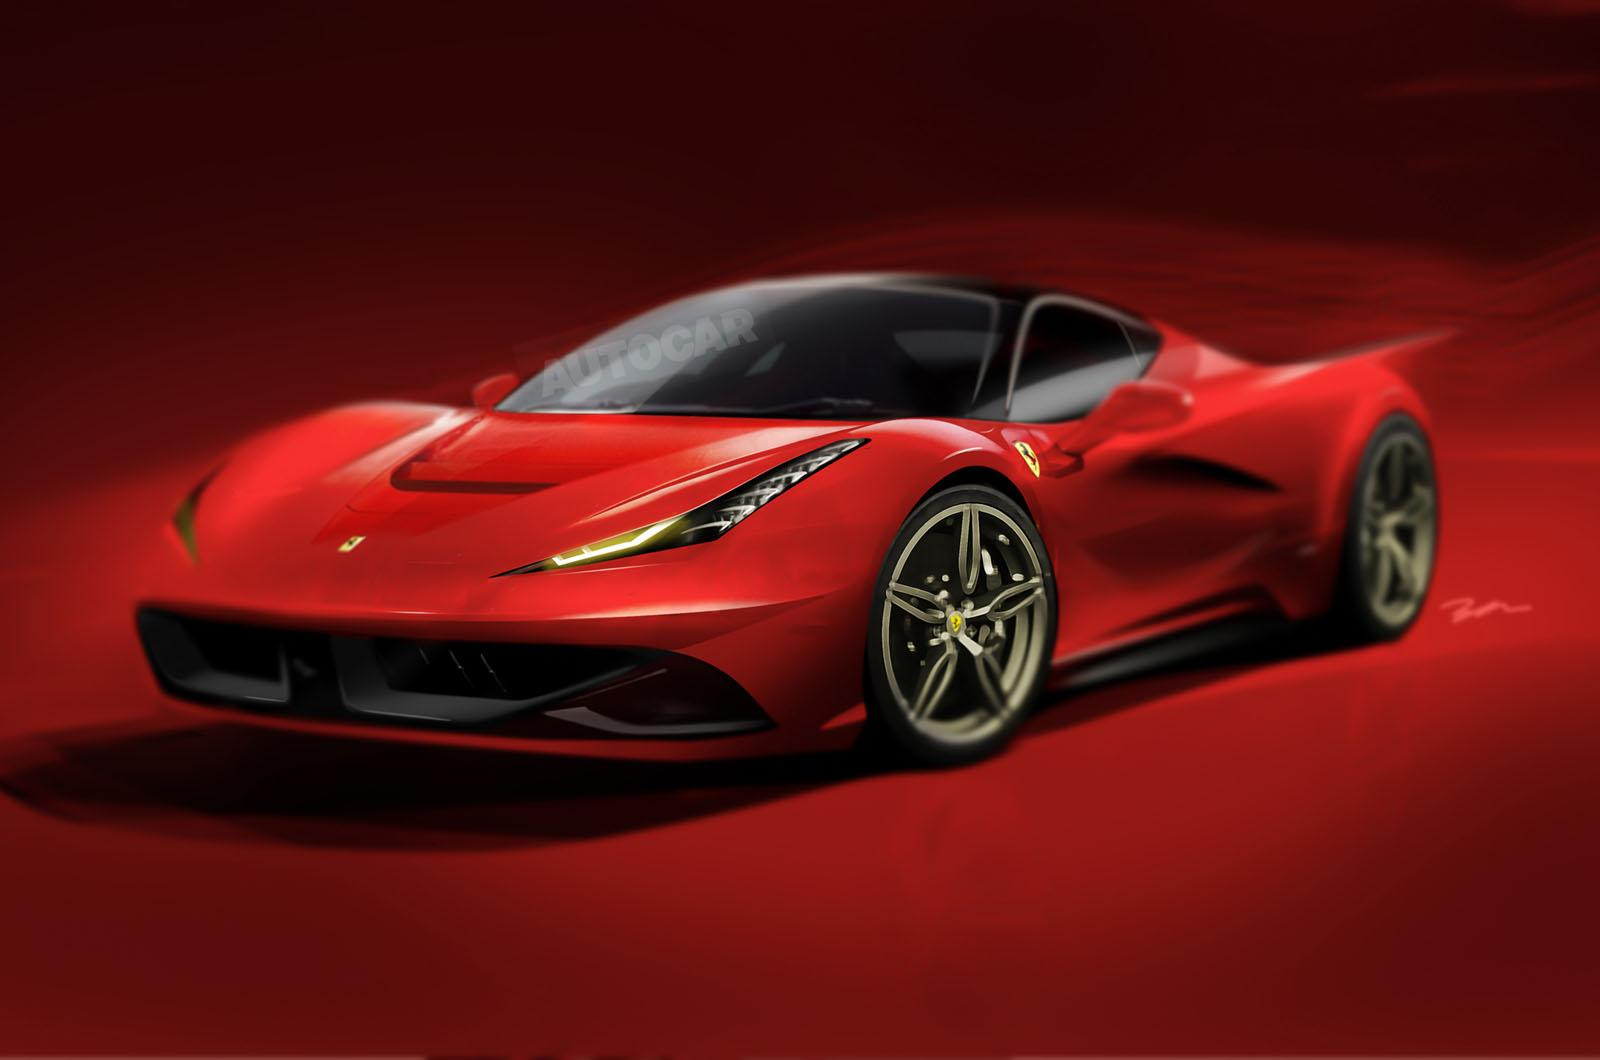 ferrari 458 rumors may feature twinturbo v8 with 650 hp